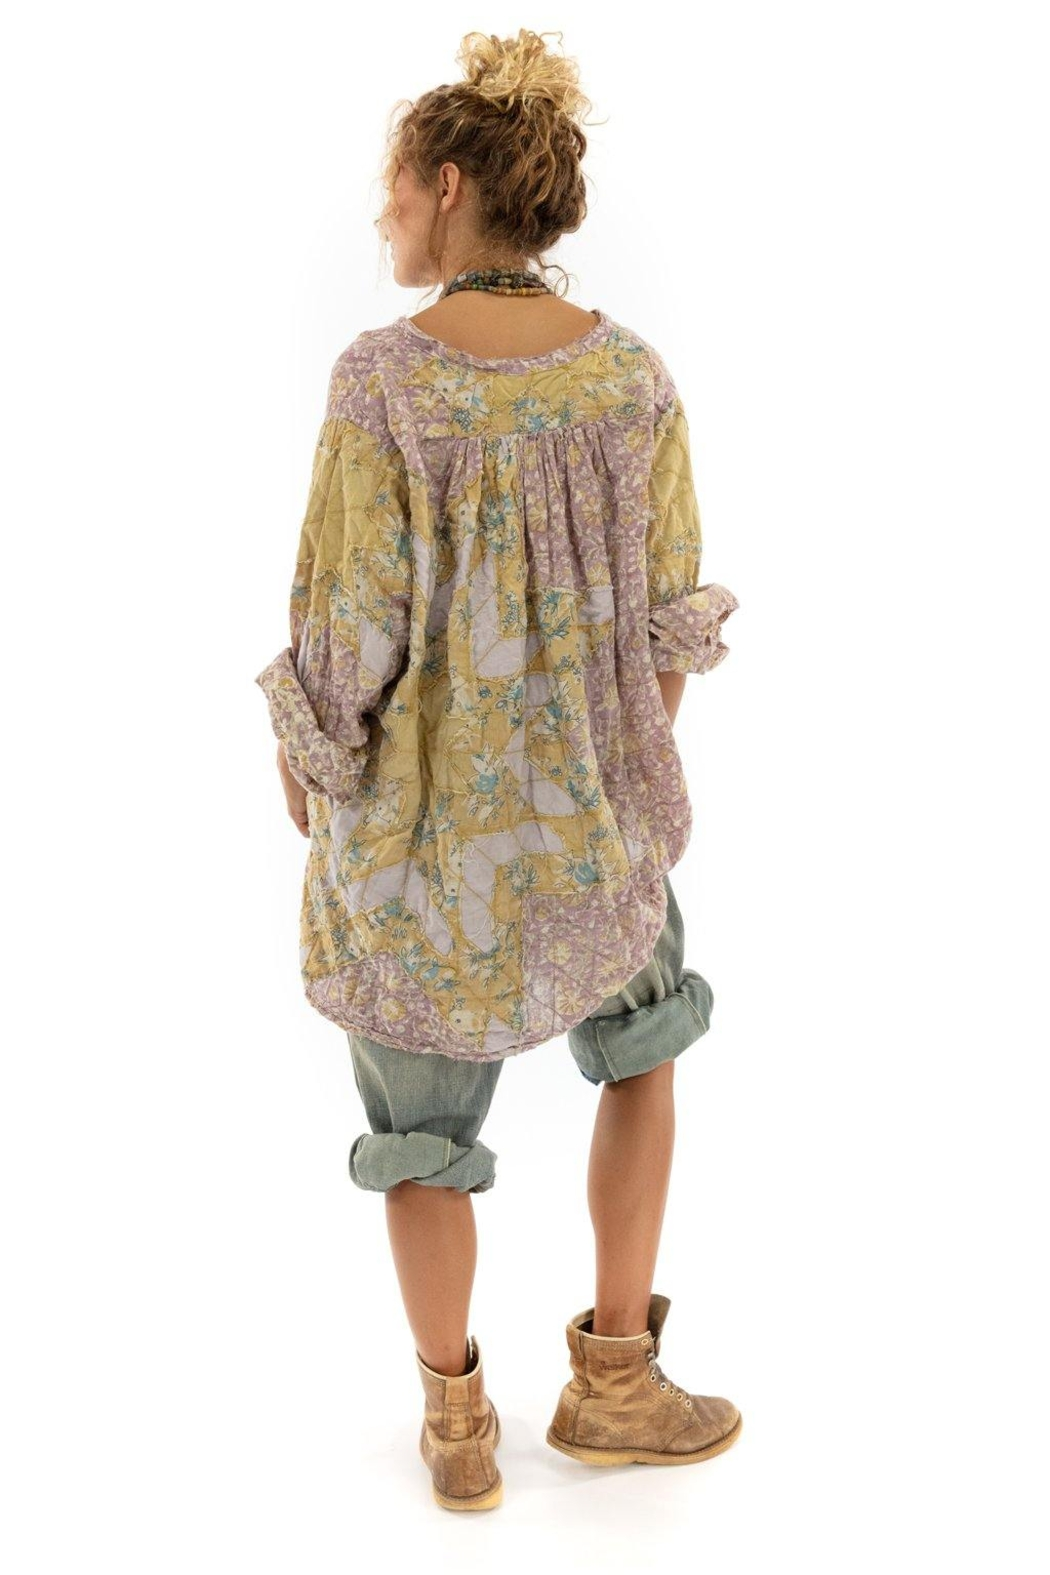 Magnolia Pearl Quilted Sunni Top - Front Full Image